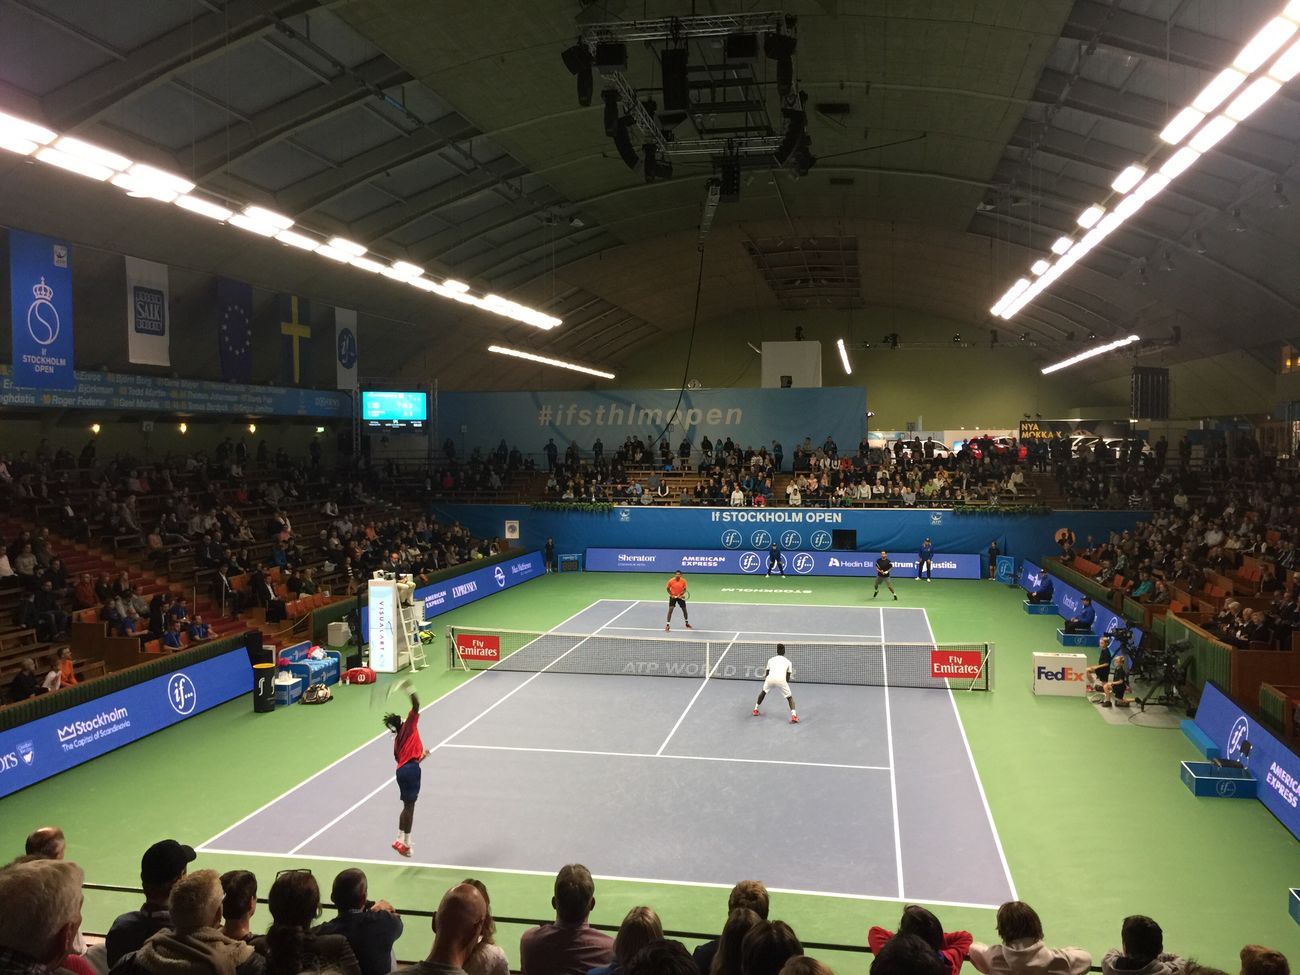 Sport Large Group Of People Stadium Crowd Watching Professional Sport Horizontal Indoors  People Adult STOCKHOLM Open